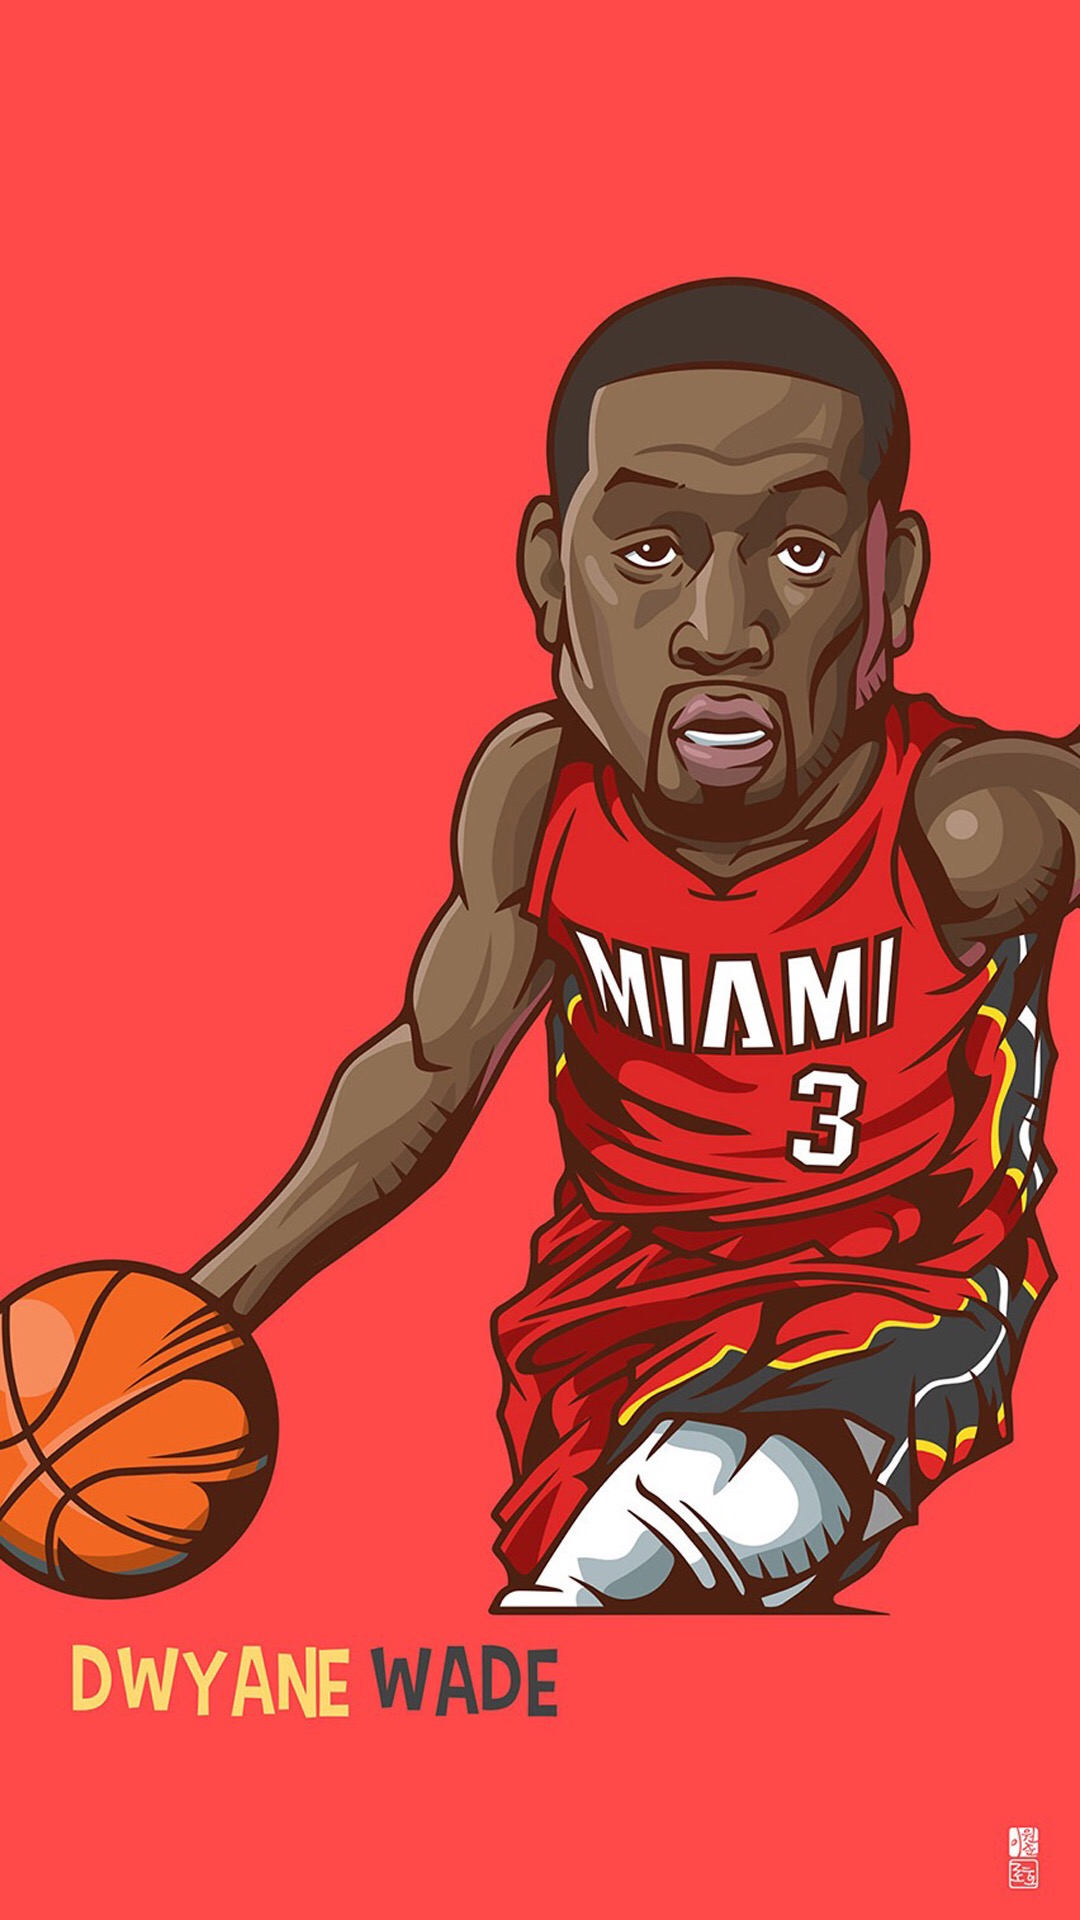 Download-Dwyane-Wade-1080-x-1920-nba-miamiheat-basketball-wade-mobile-wallpaper-wp3804694